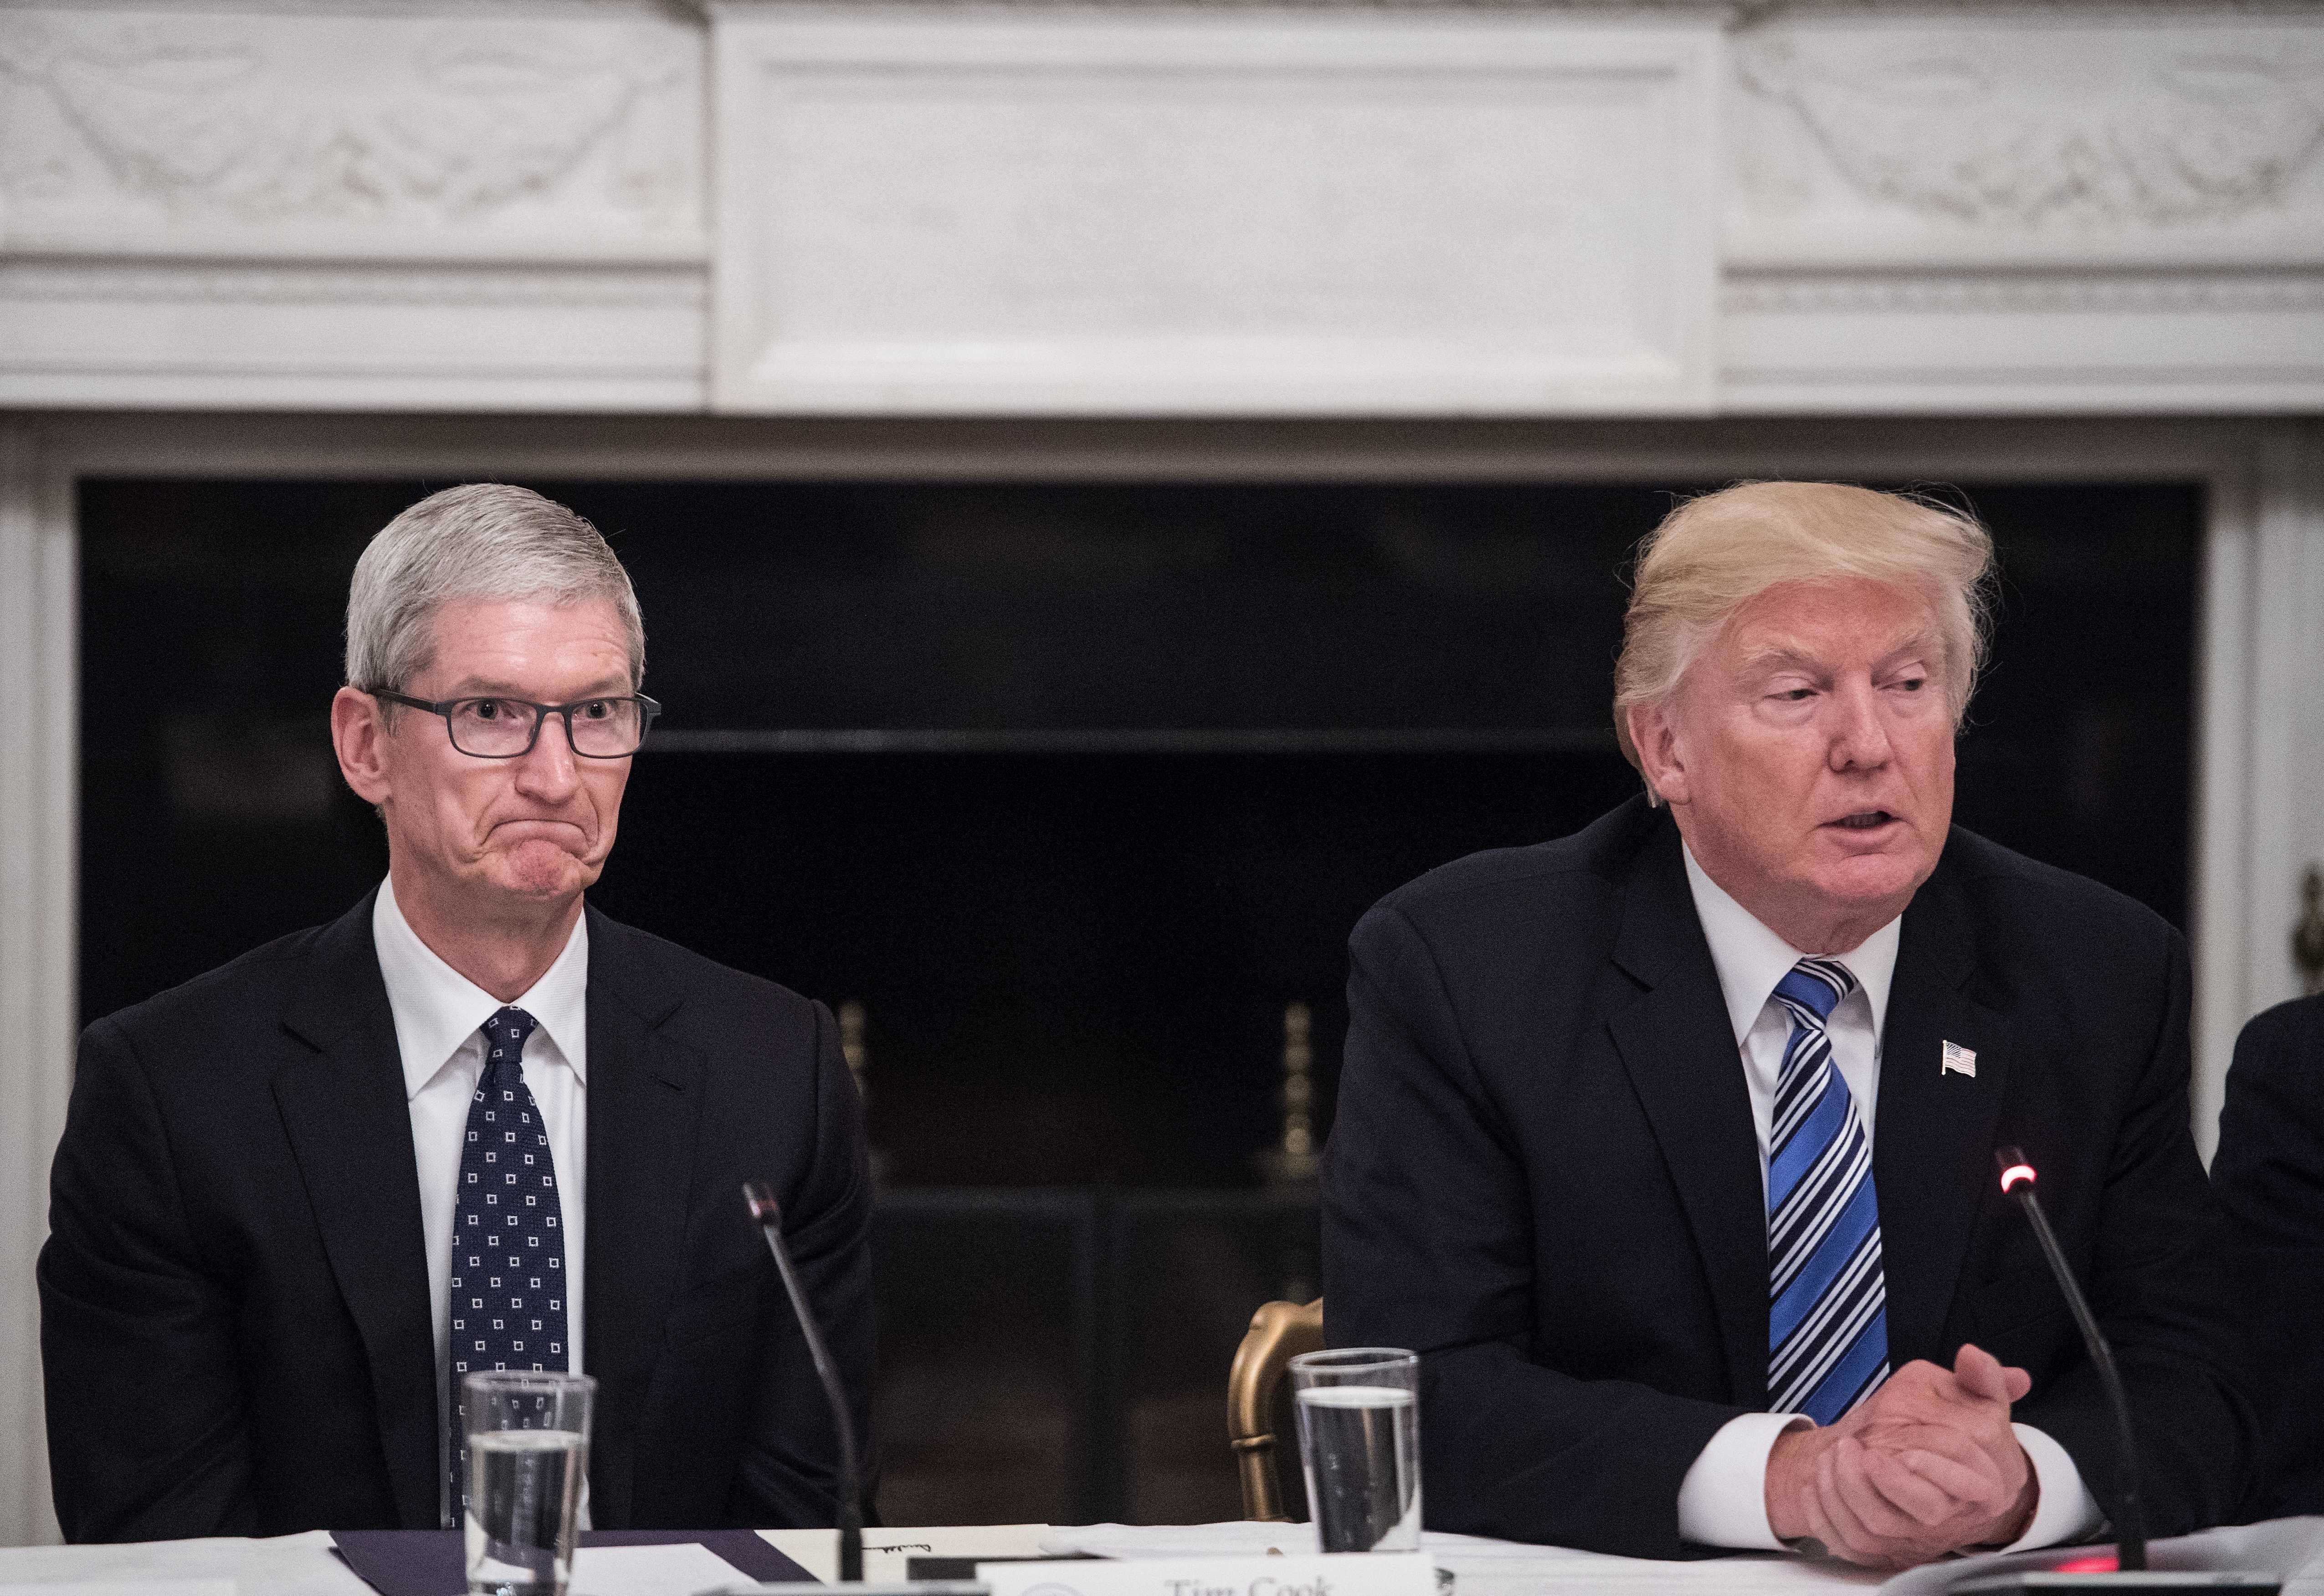 Tech Leaders Met With Trump, And The Looks On Their Faces Said It